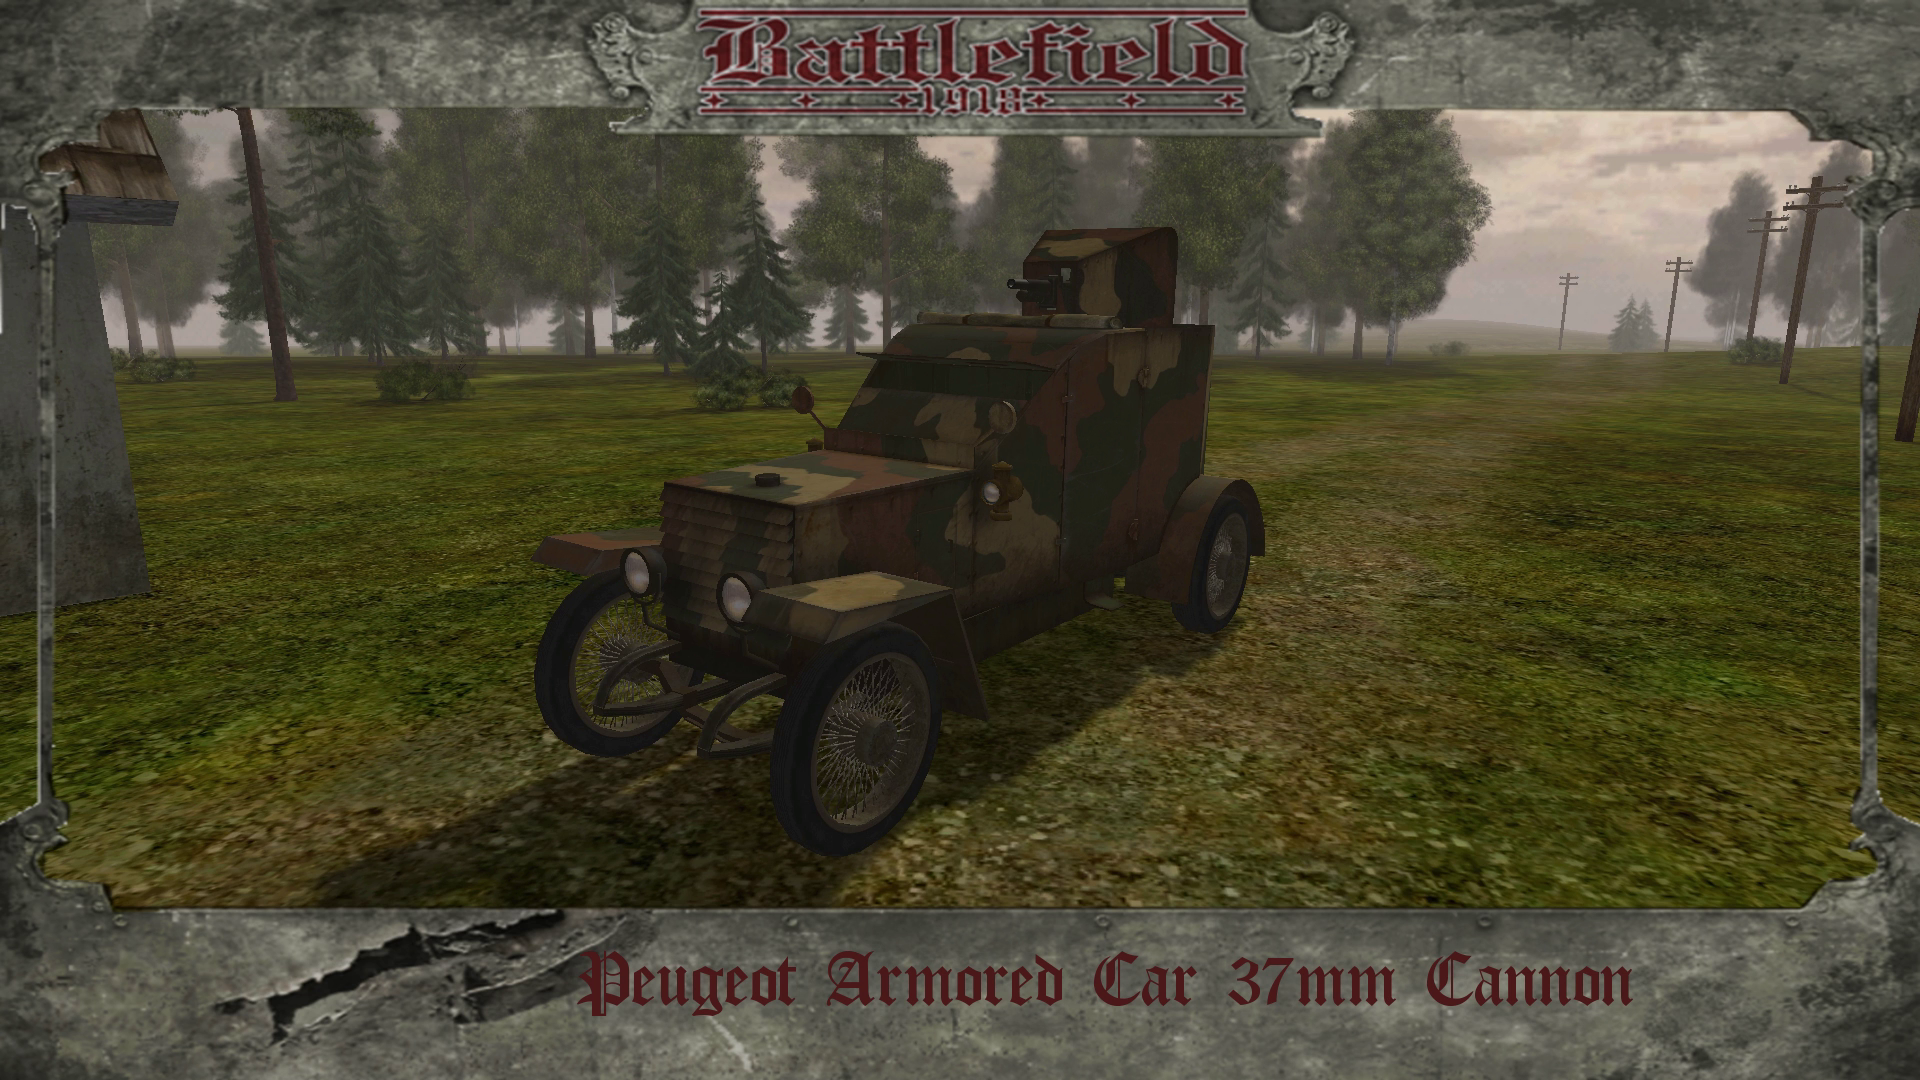 Peugeot Armored Car 37mm Cannon